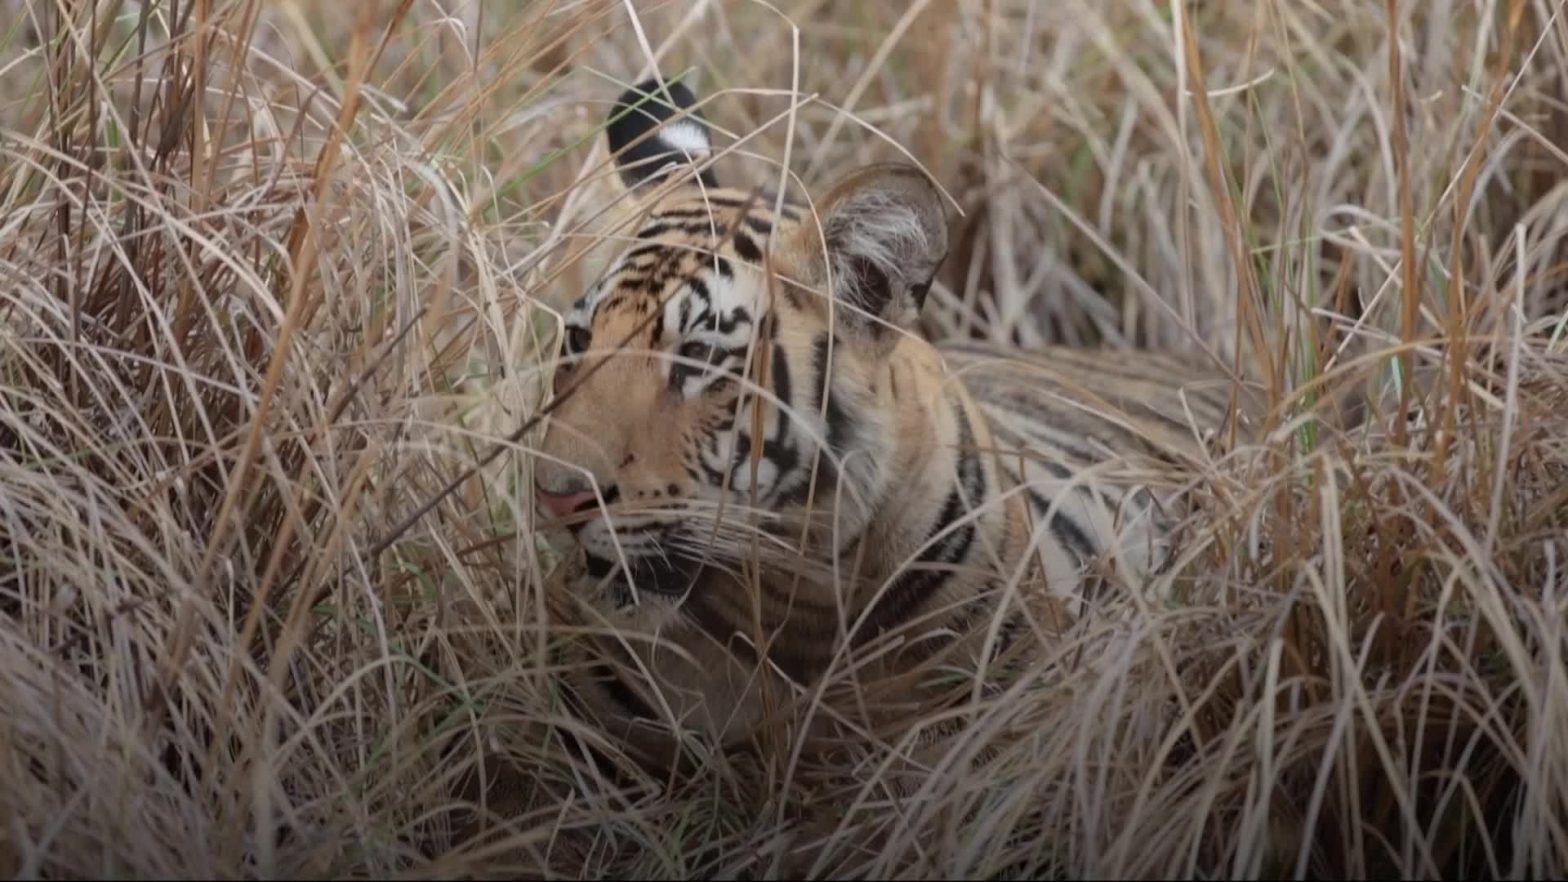 celebrities-and-campaigners-join-forces-for-international-tiger-day